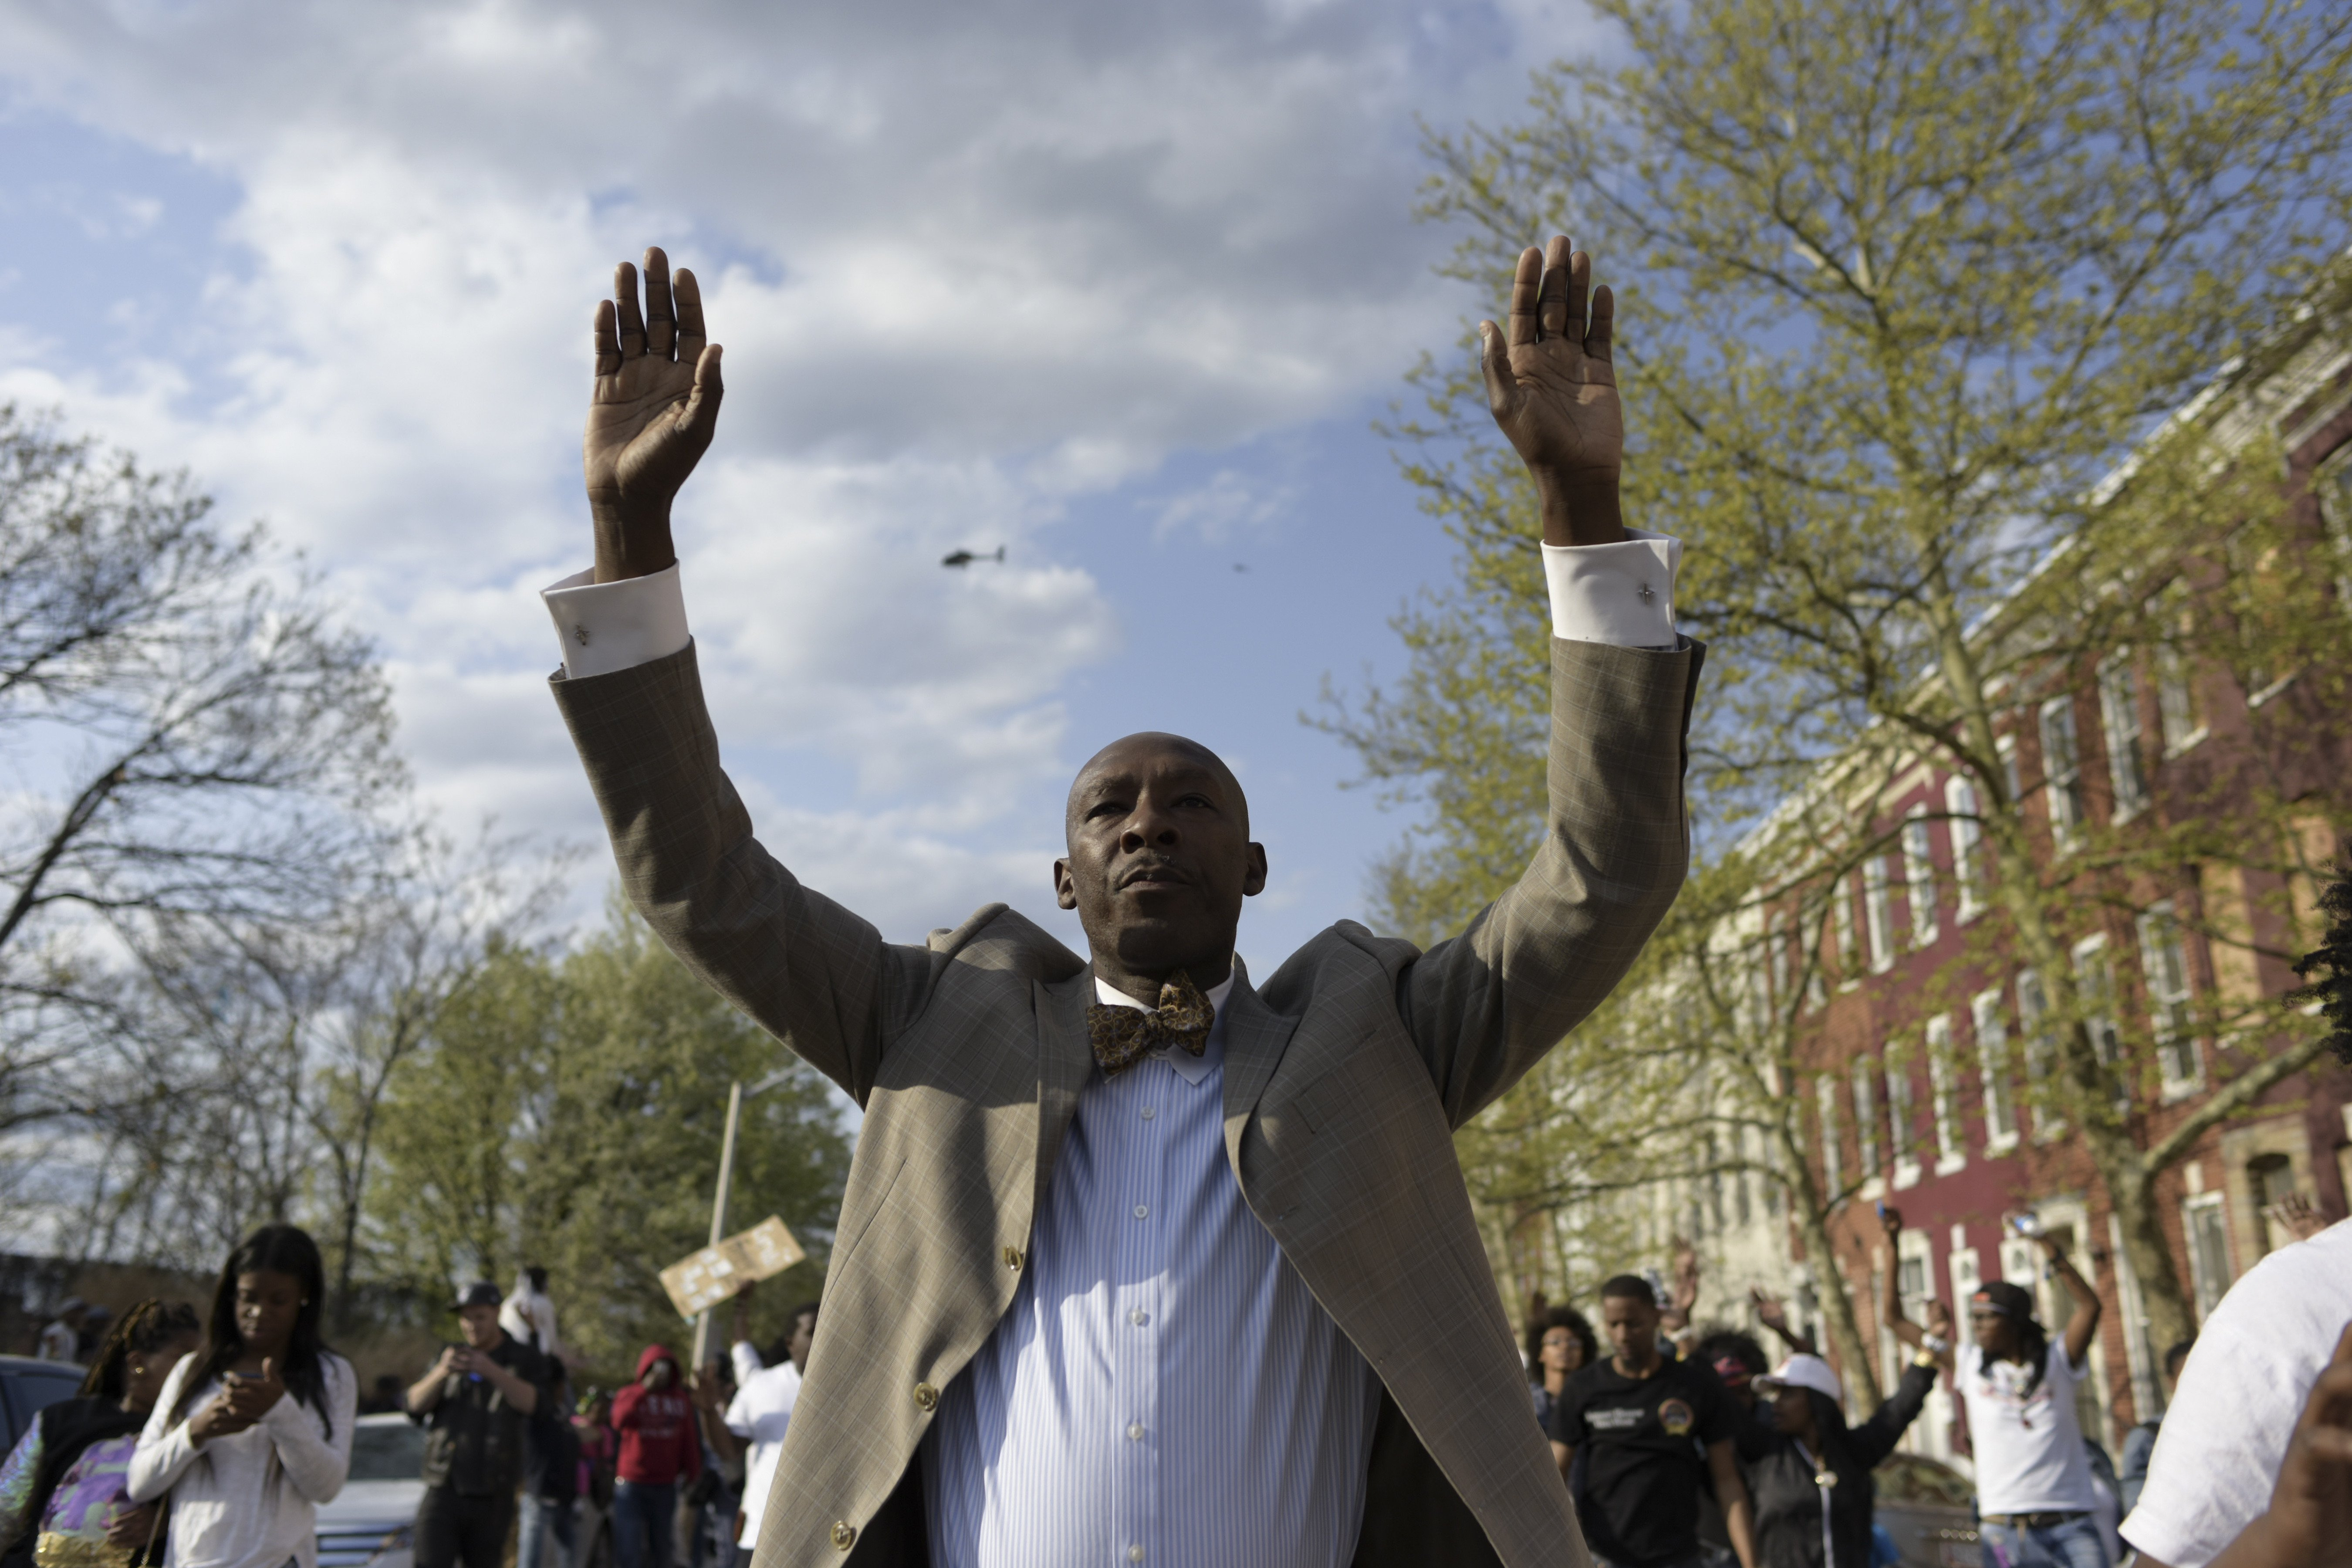 Edward Mazyck joins hundreds of other protesters marching through Baltimore on April 21, 2015.